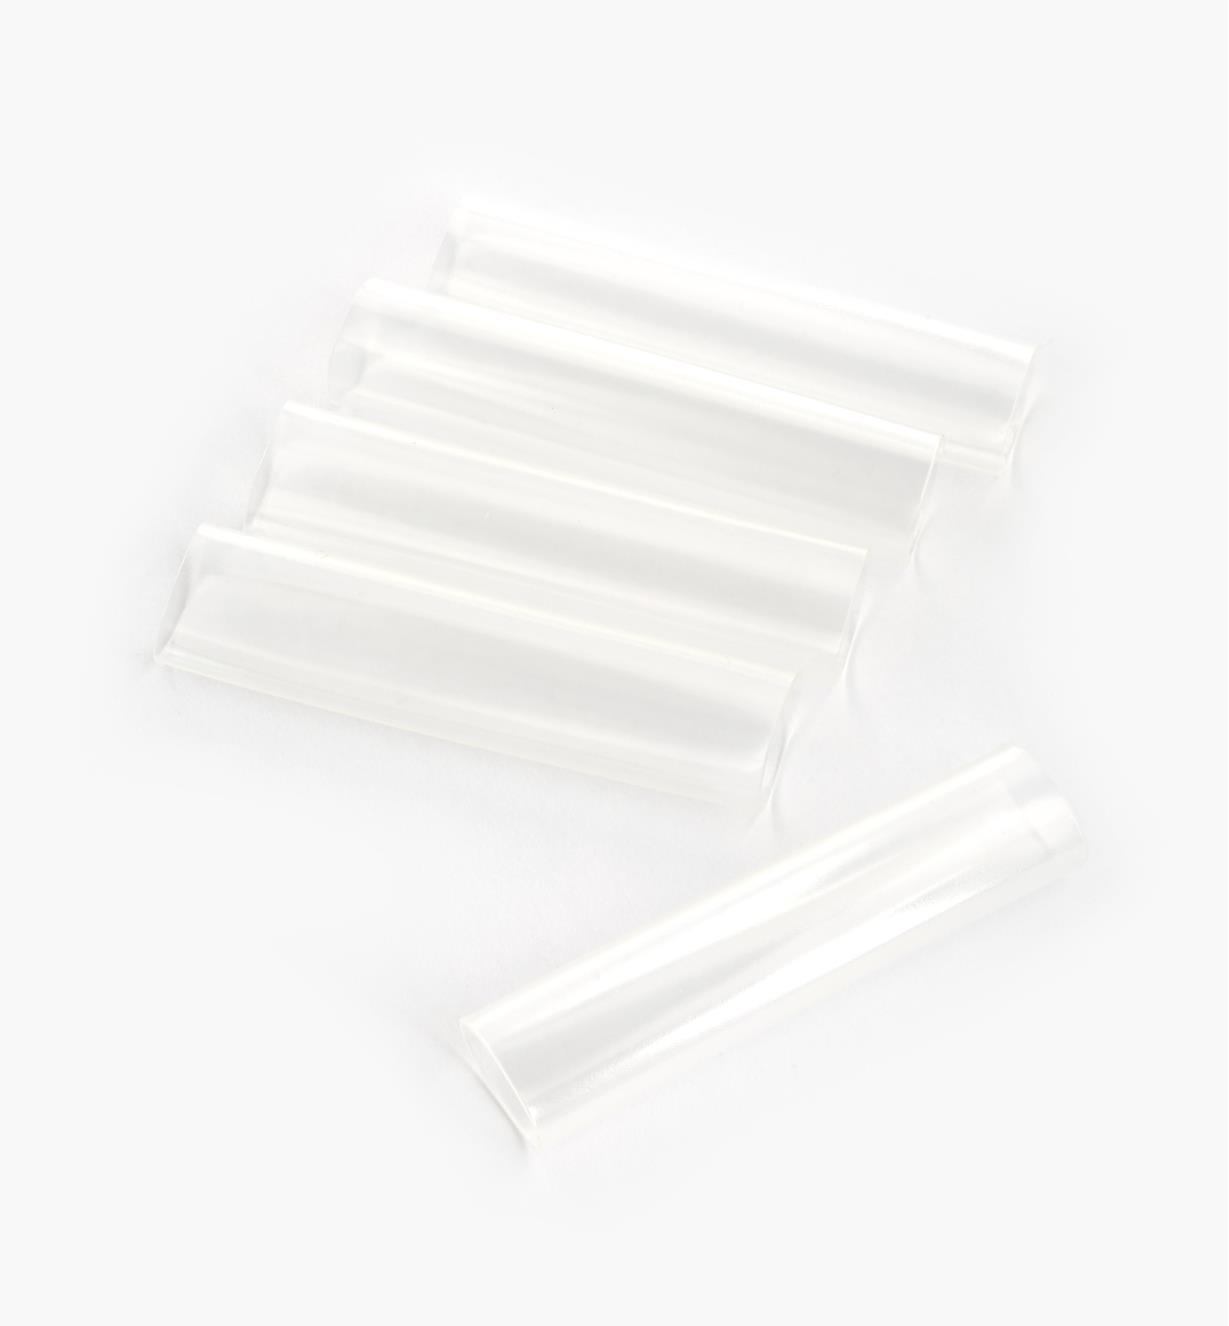 00U4145 - Shrink Tubes for White Tape Lighting, package of 5